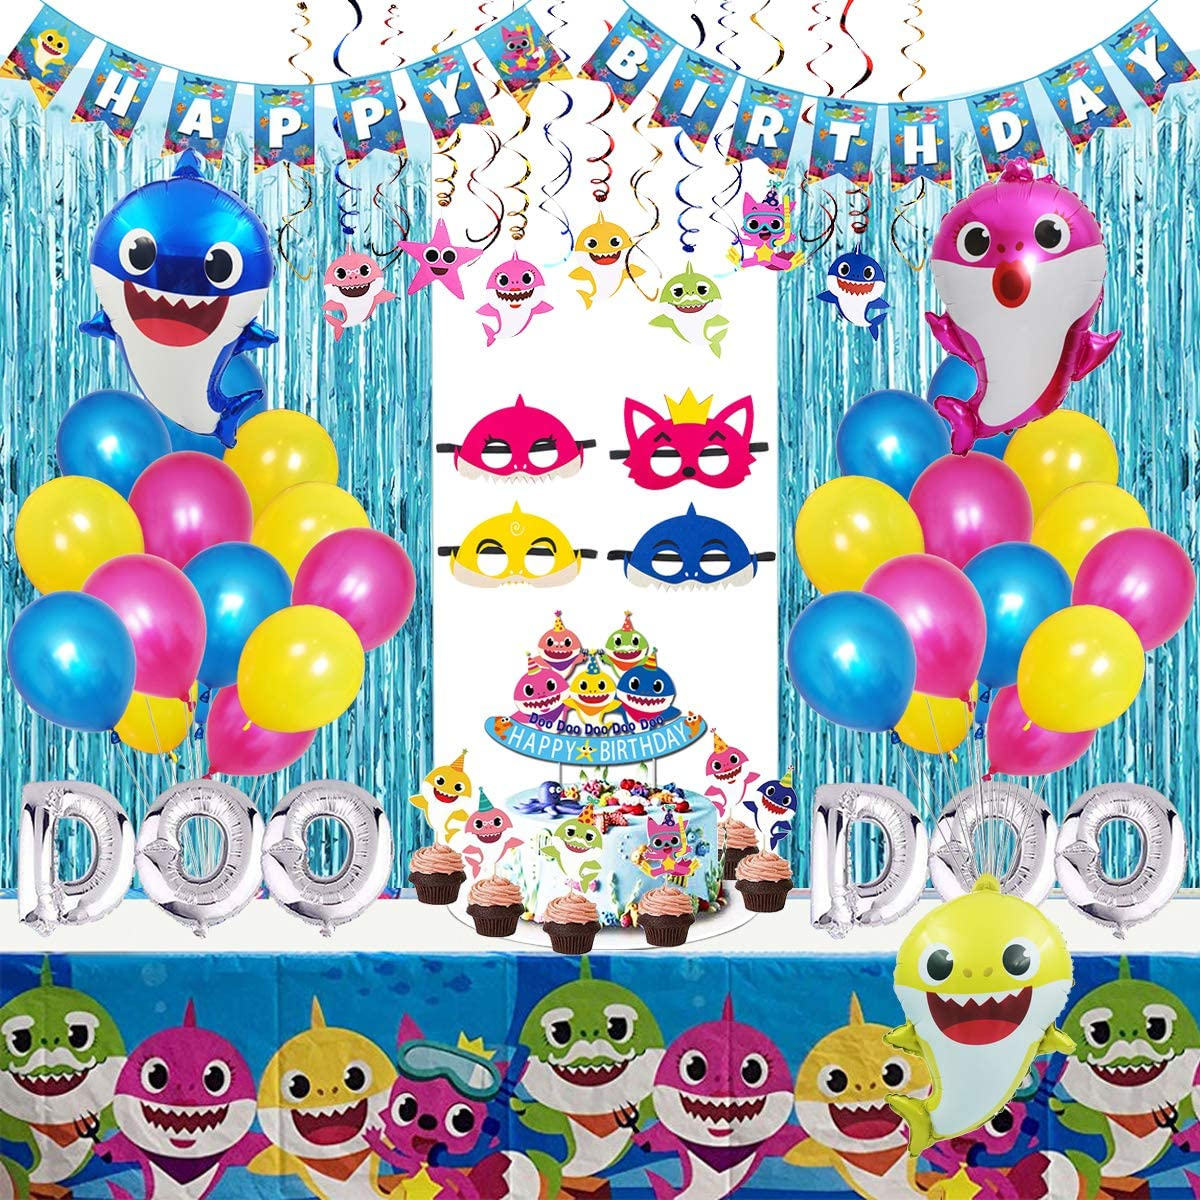 Shark Party Supplies for Baby, 77 pcs Shark Theme Birthday Party Decorations for Kids - Includes Shark Masks, Hanging Swirl, Little Shark Balloons, Foil Curtains, Table Cloth, Banner, Toppers